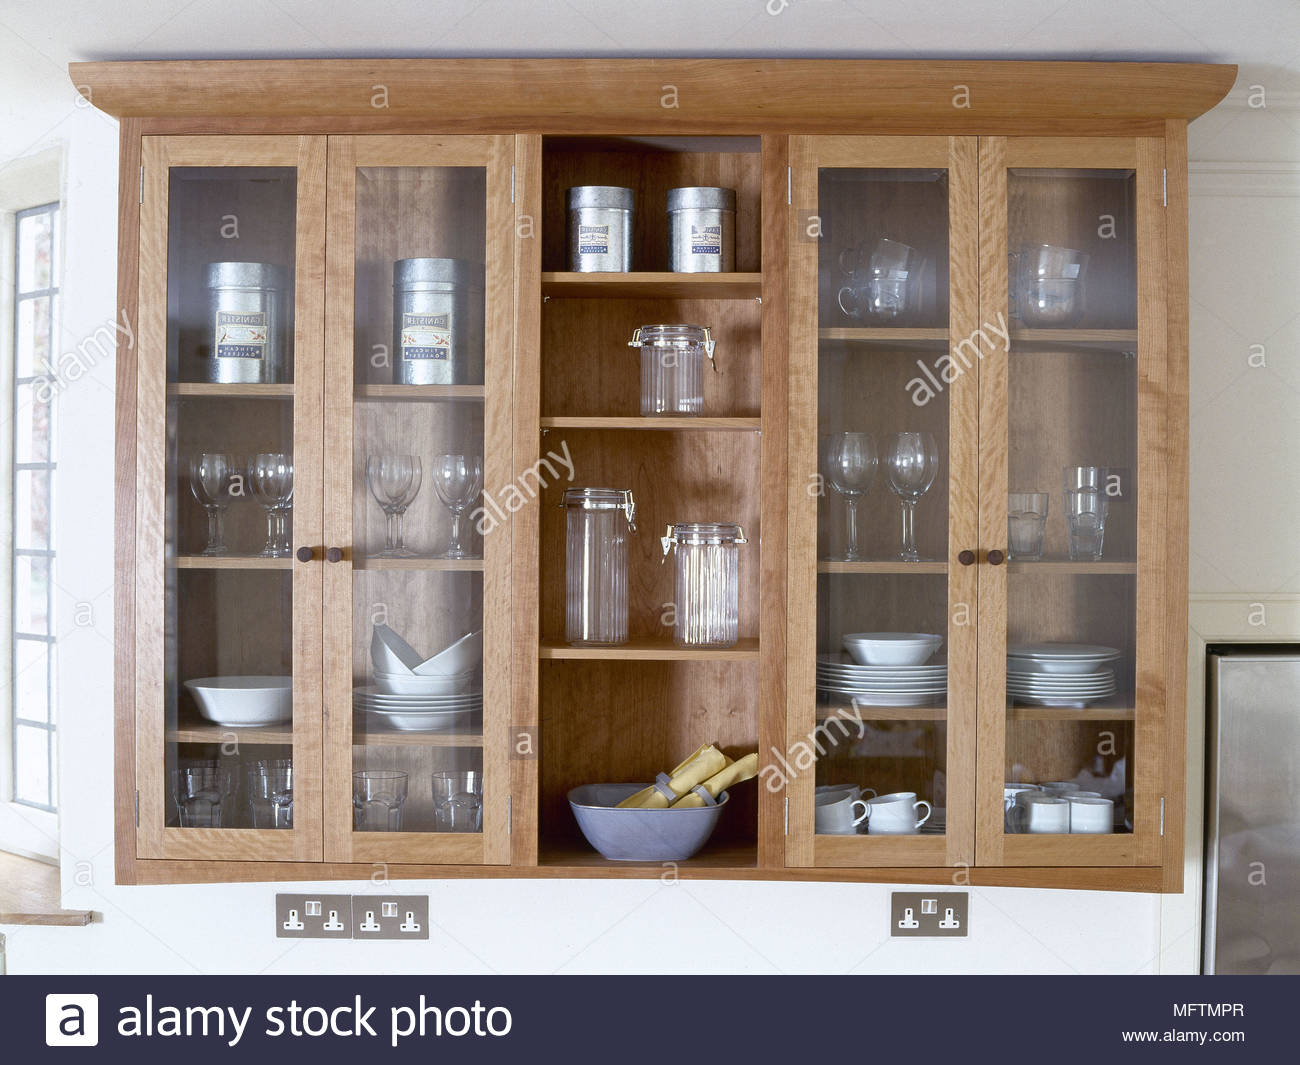 Detail Of A Wooden Display Cabinet With Glass Doors.